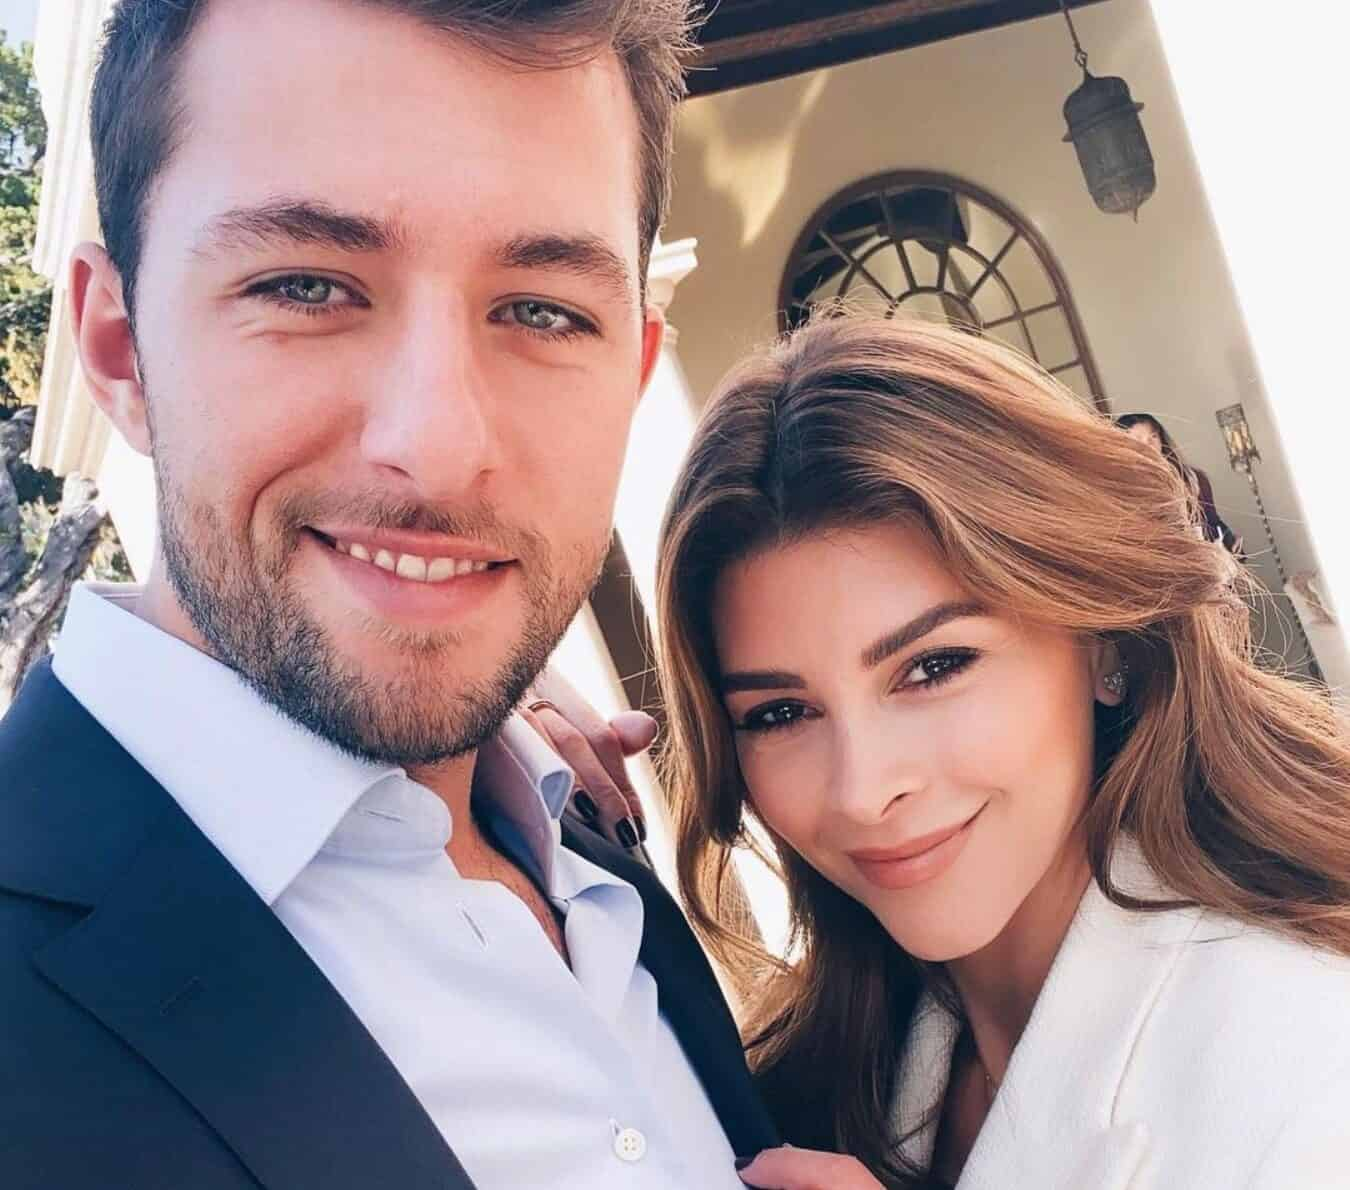 PHOTOS: Shiva Safai Marries Niels Houweling in Romantic Ceremony, See Pics of Her Stunning Wedding Dress and Their Arch of Roses